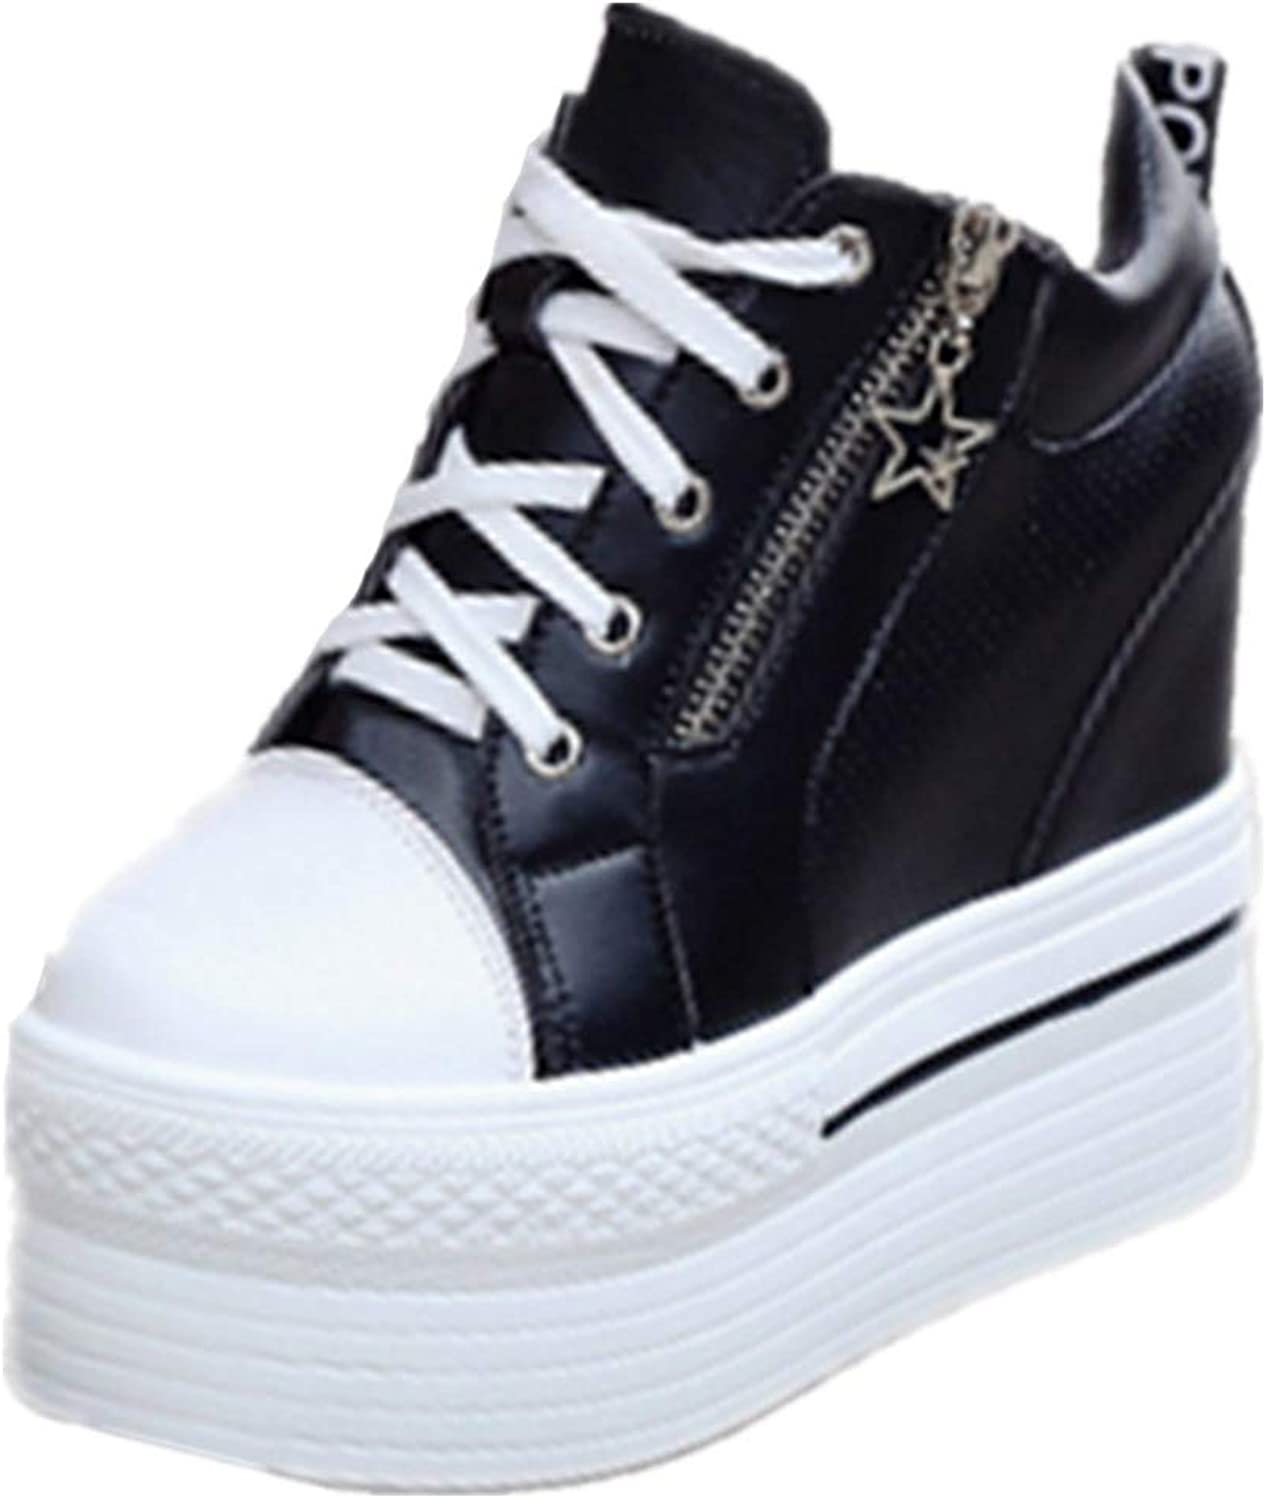 Btrada Women Platform Zipper Wedge Sneakers Waterproof Thick High Heel Increased Casual shoes